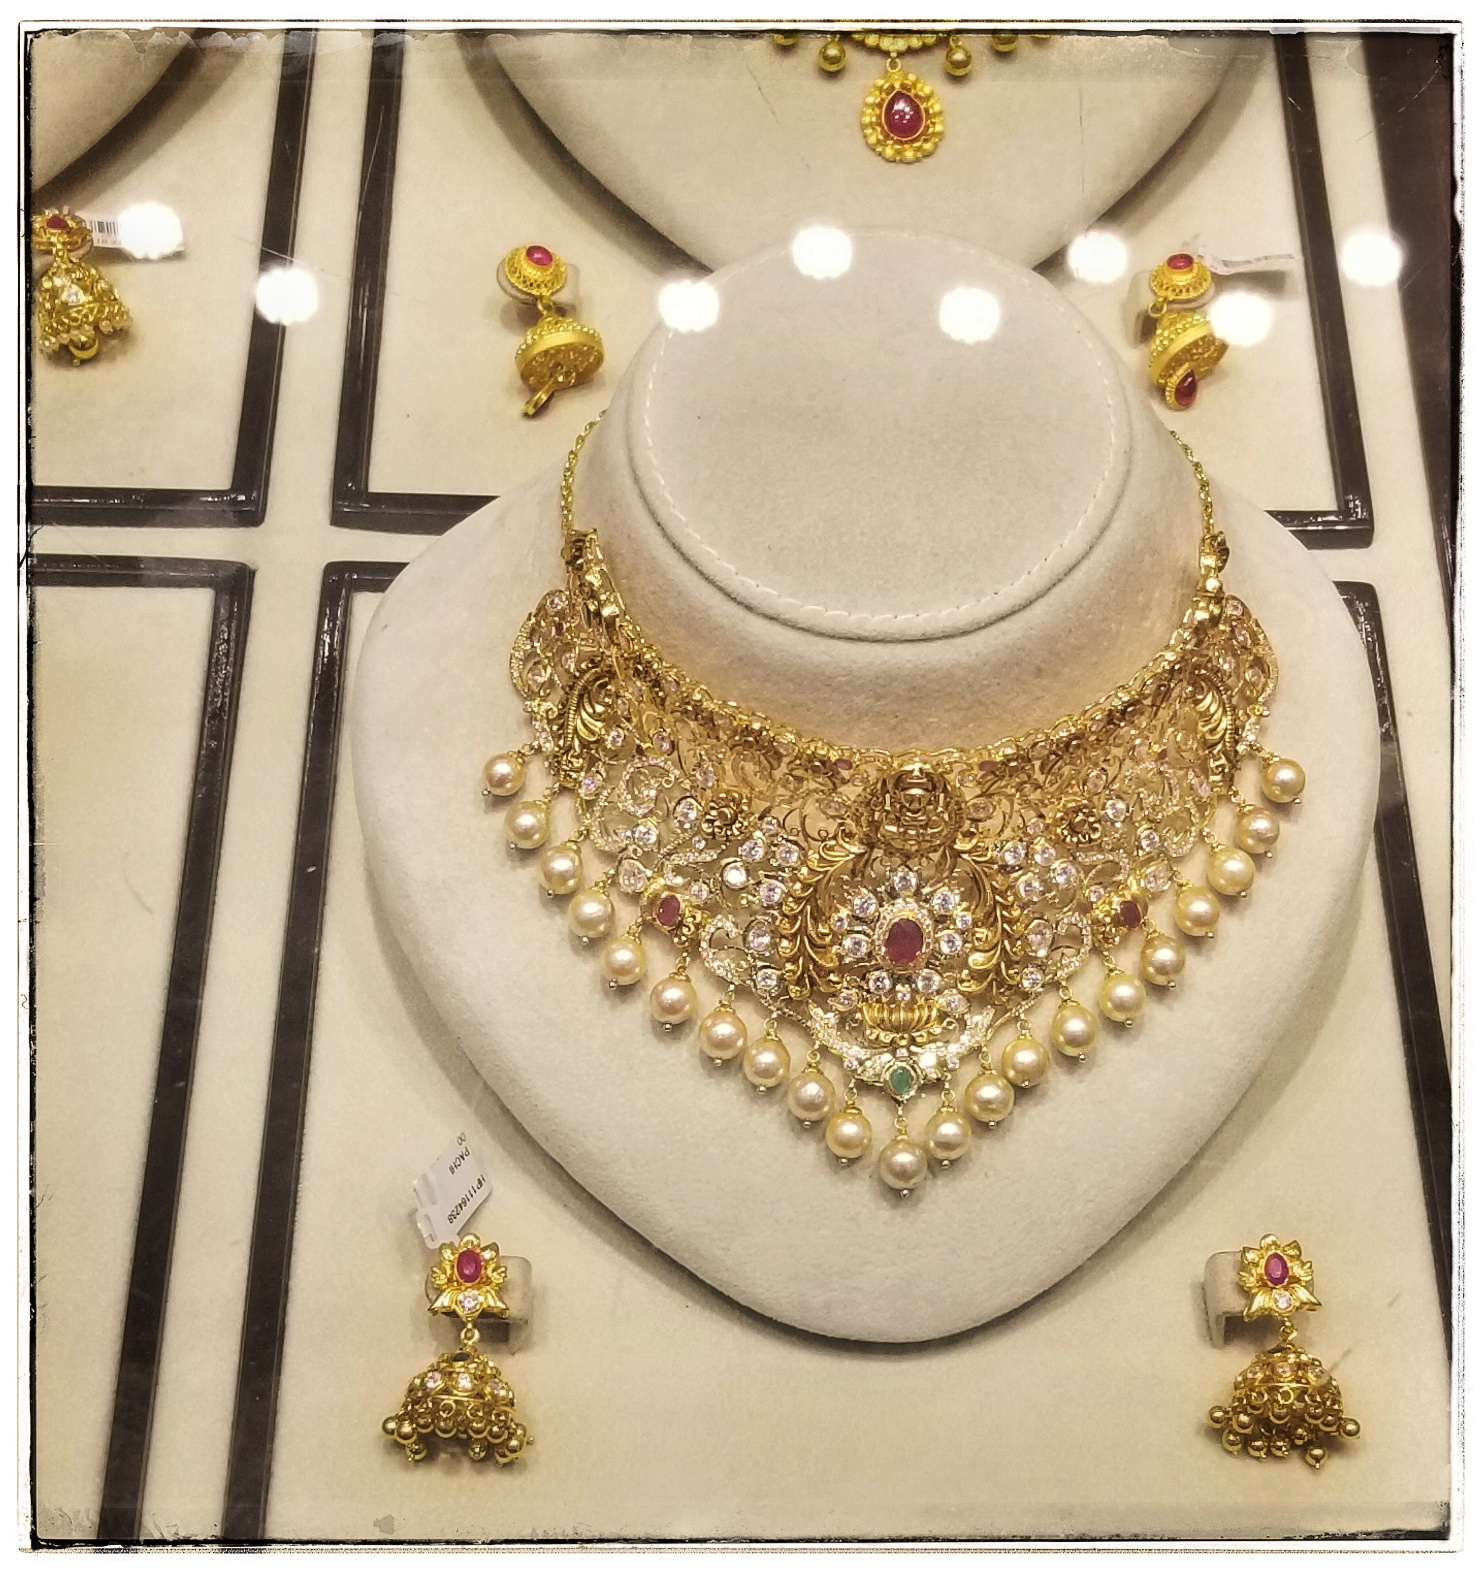 Typical necklace for a standard wedding. This cost $4,500.